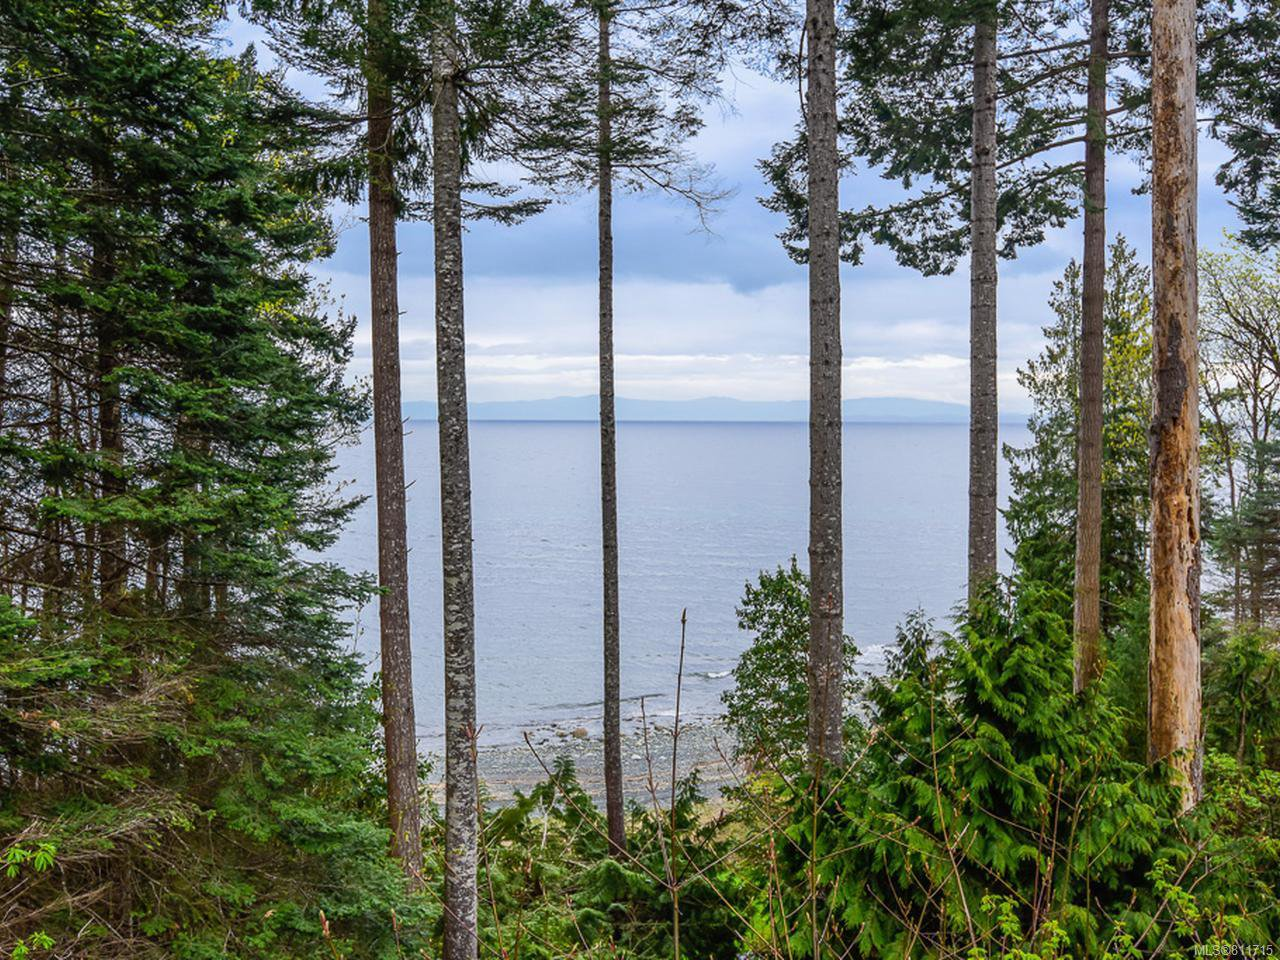 Main Photo: 4651 Maple Guard Dr in BOWSER: PQ Bowser/Deep Bay Single Family Detached for sale (Parksville/Qualicum)  : MLS®# 811715